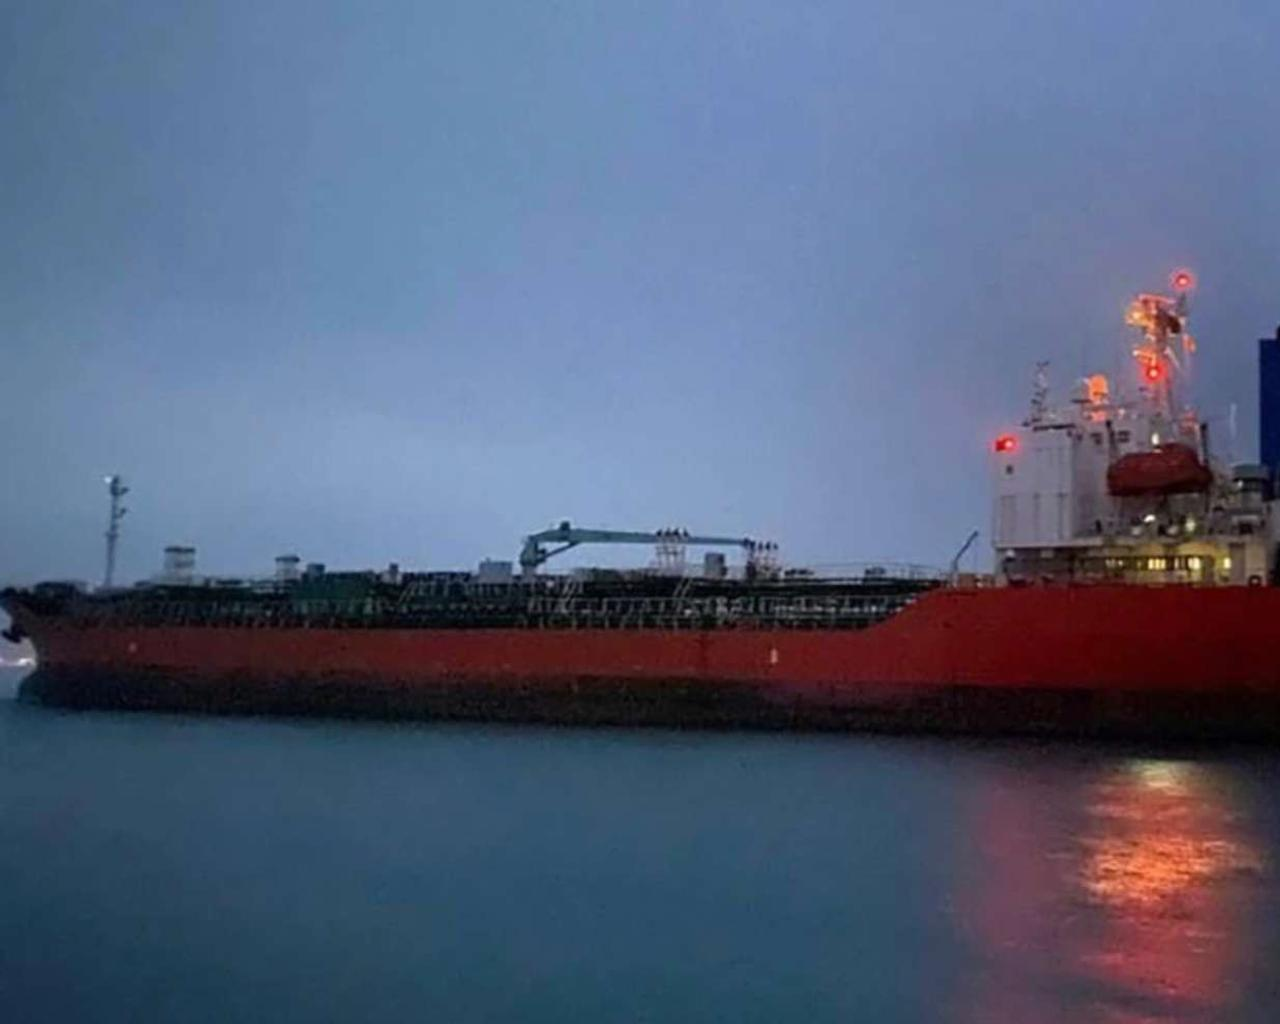 Iran released a South Korean oil tanker seized in January.